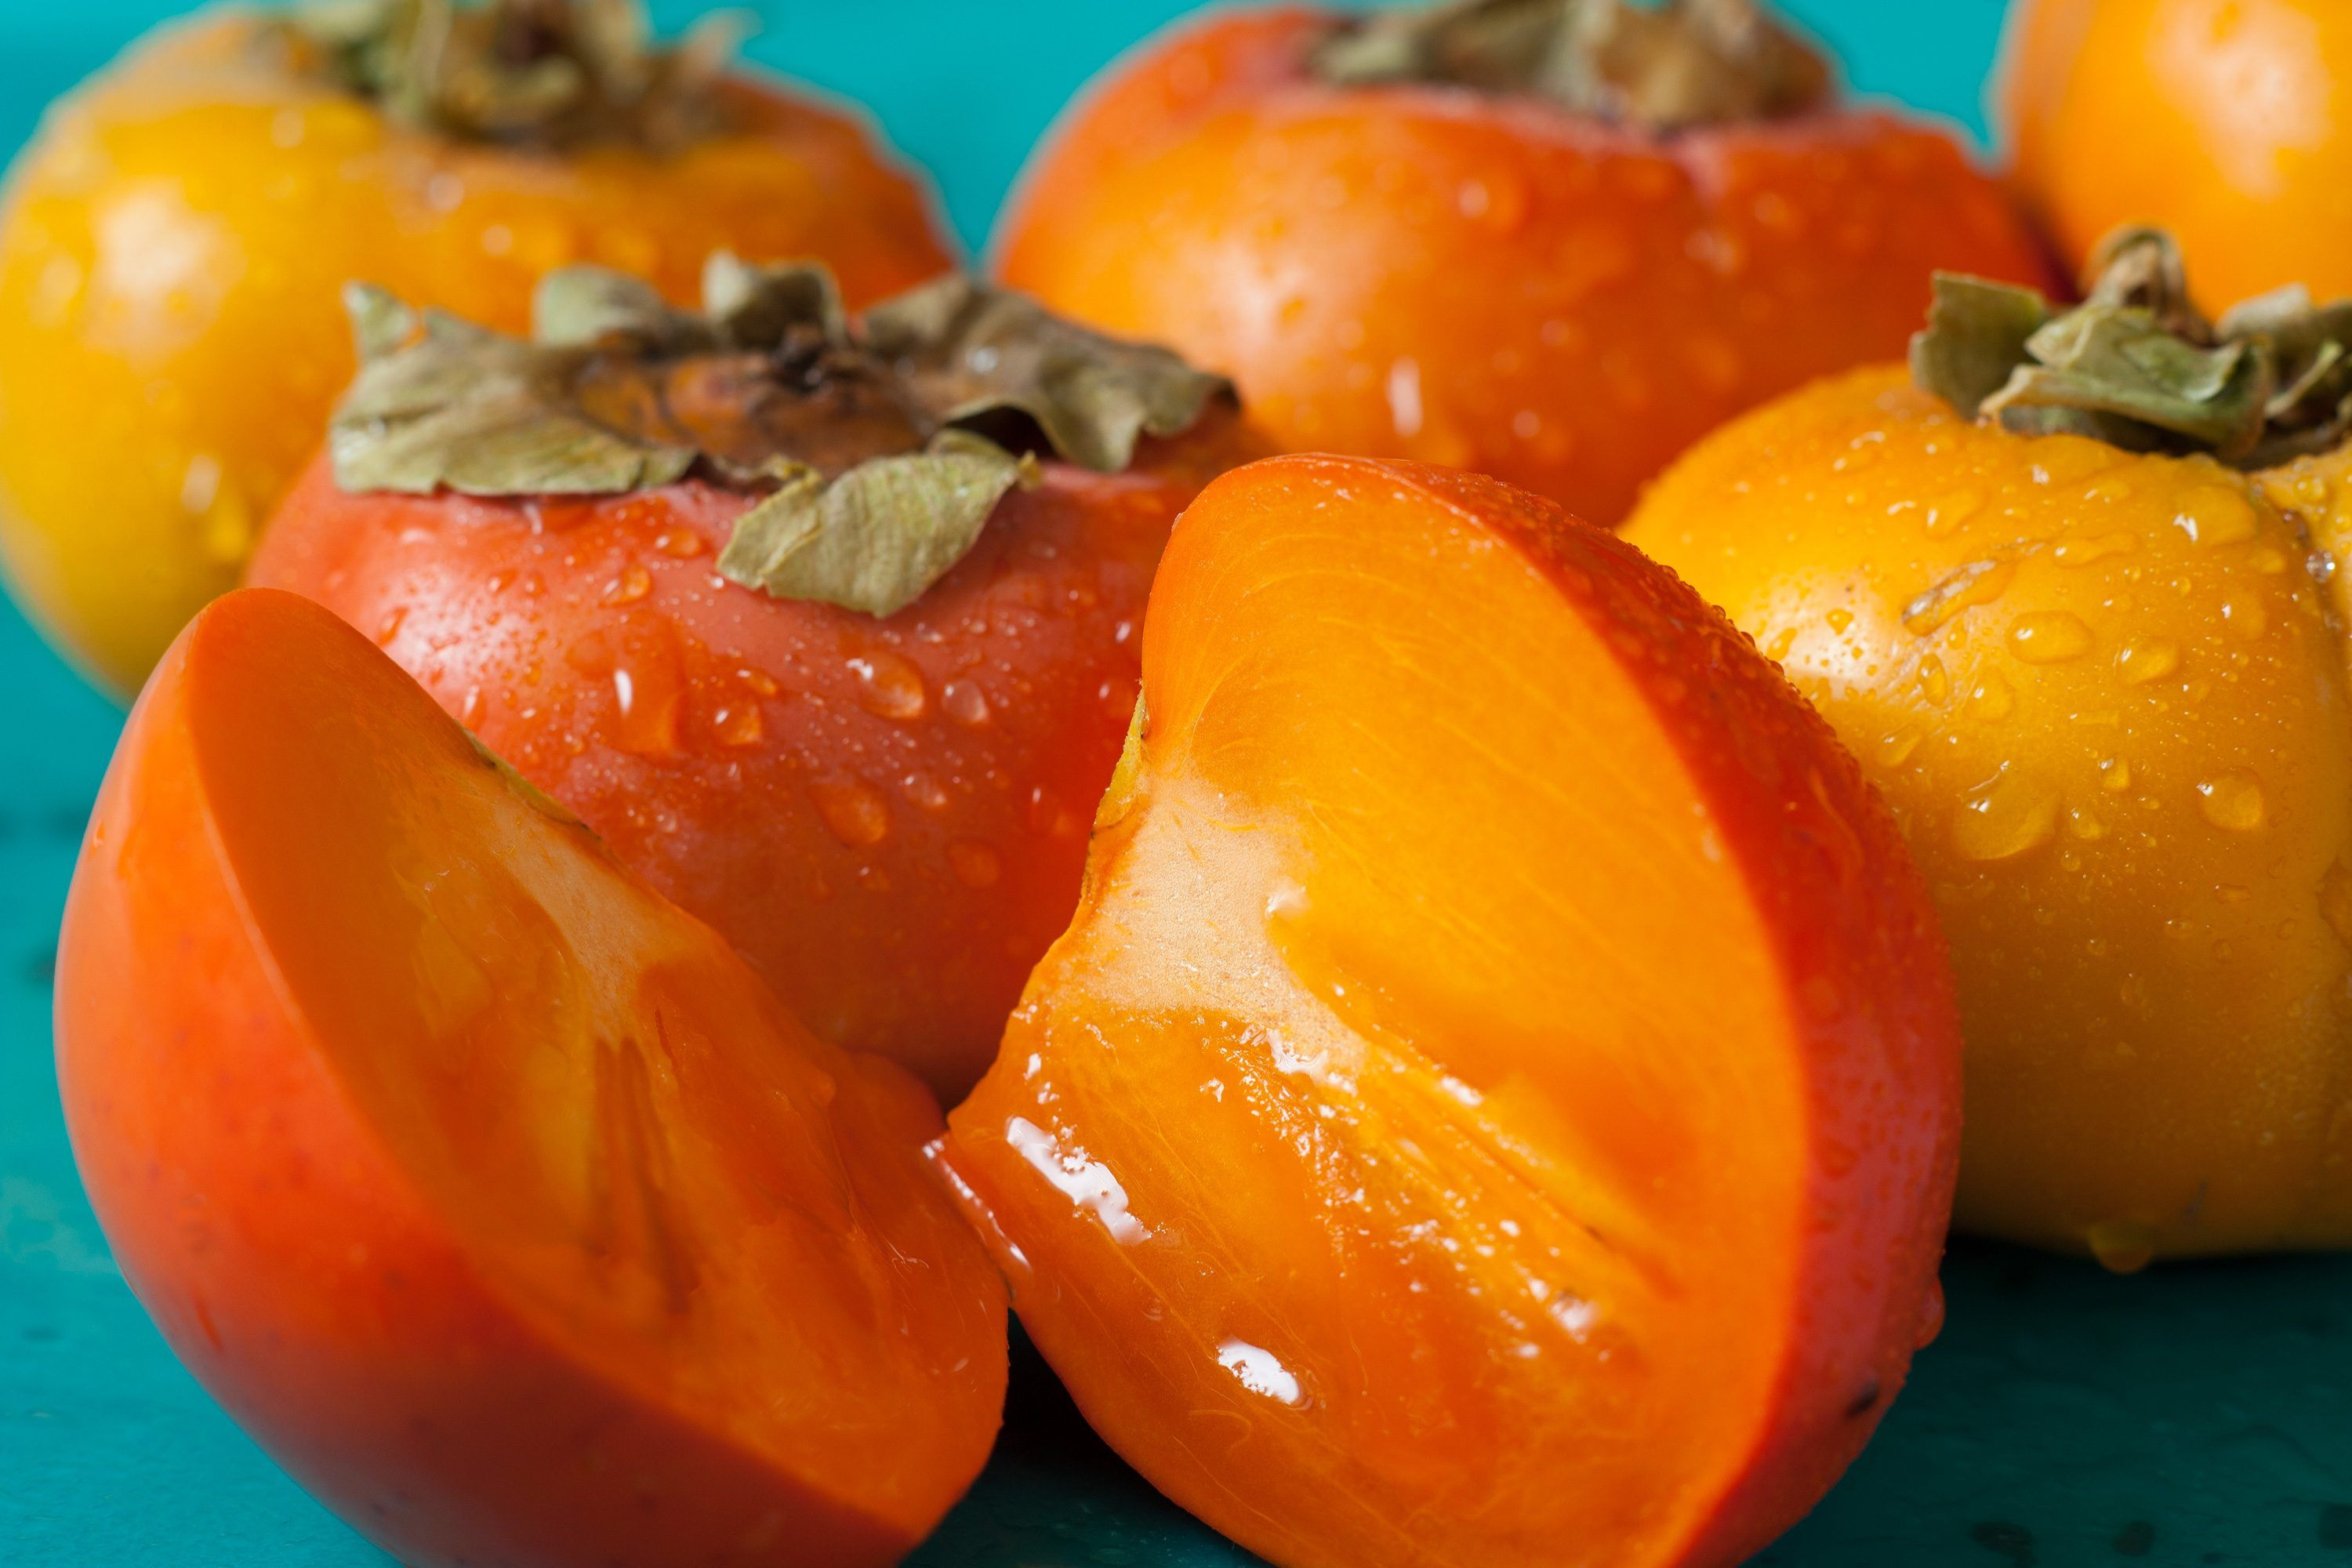 Persimmons are most often eaten fresh, according to the Hawaii University Extension's website, but many recipes like persimmon jam, persimmon pudding and persimmon cookies call for persimmon pulp. Although the persimmon grows on a tree, it is considered a berry. Depending on the variety, persimmons can weigh a few ounces or more than a pound. …